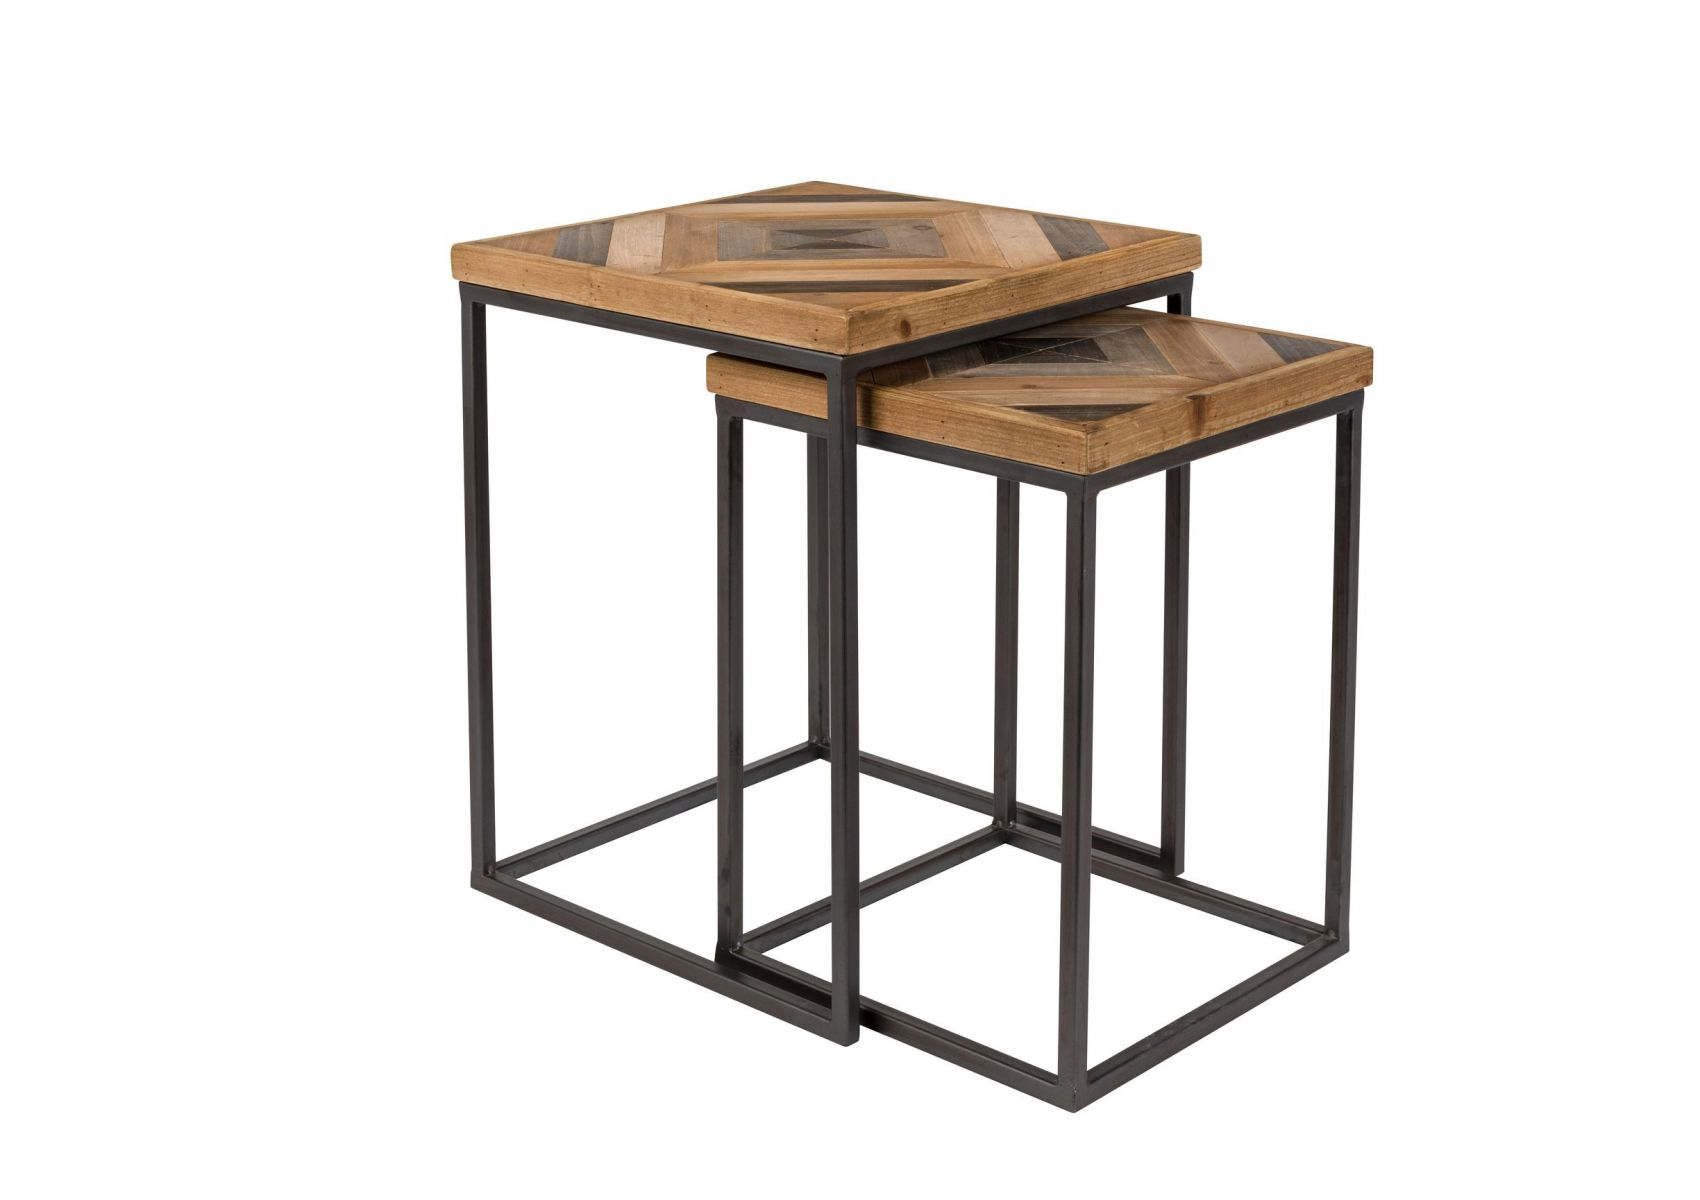 table basse gigogne industrielle bois et m tal joy boite. Black Bedroom Furniture Sets. Home Design Ideas